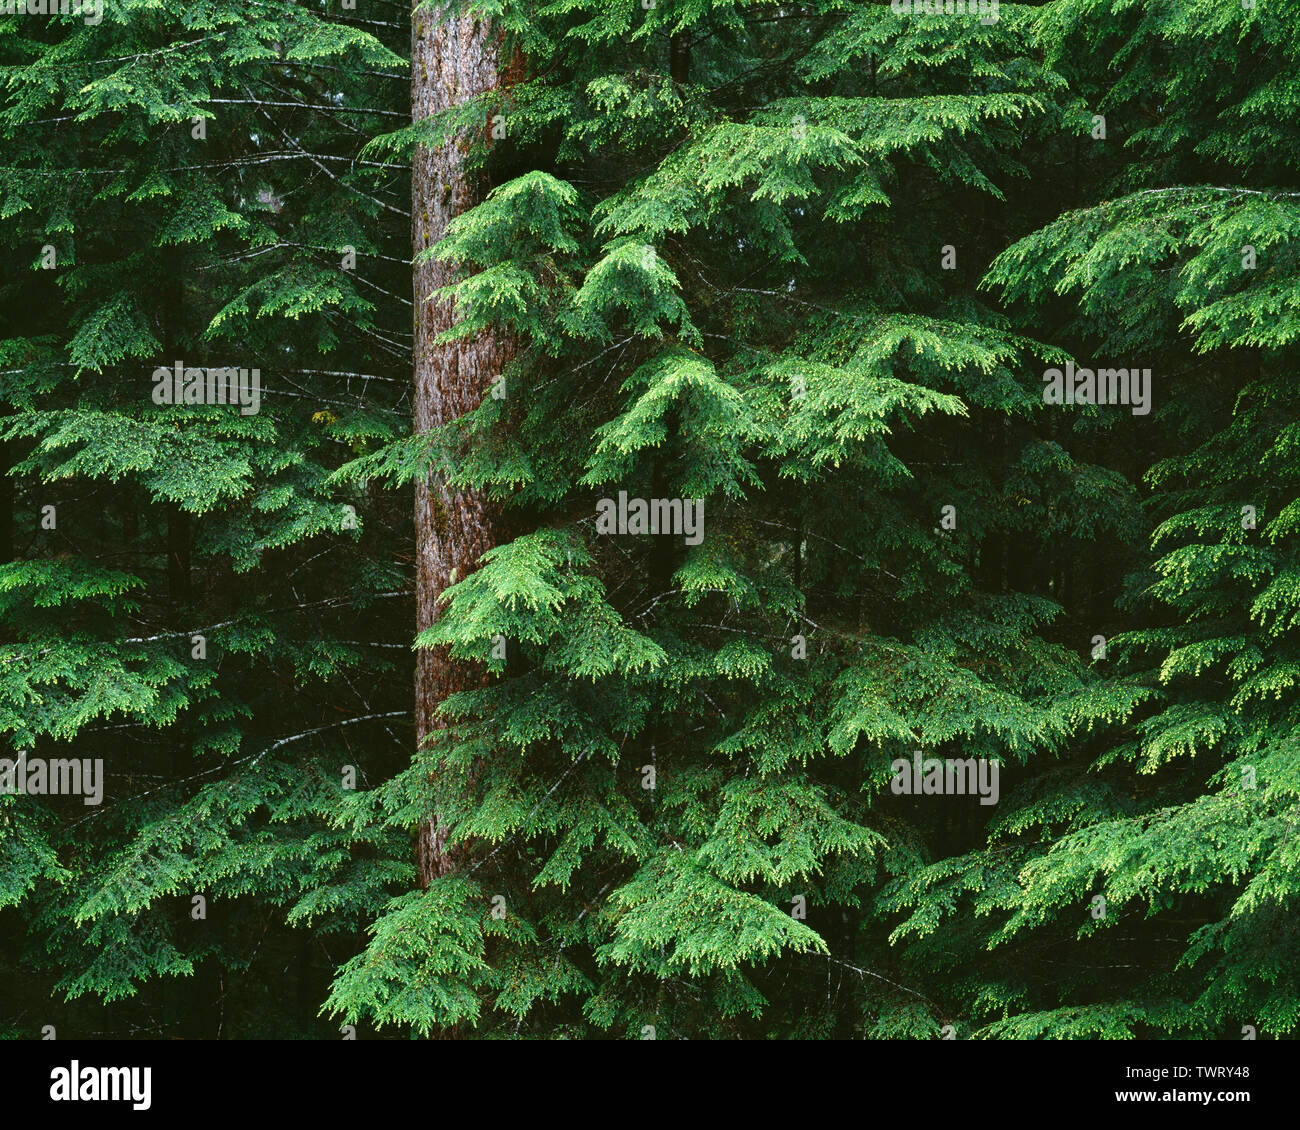 USA, Washington, Olympic National Park, Trunk and layered branches of  western hemlock (Tsuga heterophylla) in Sol Duc Valley. - Stock Image